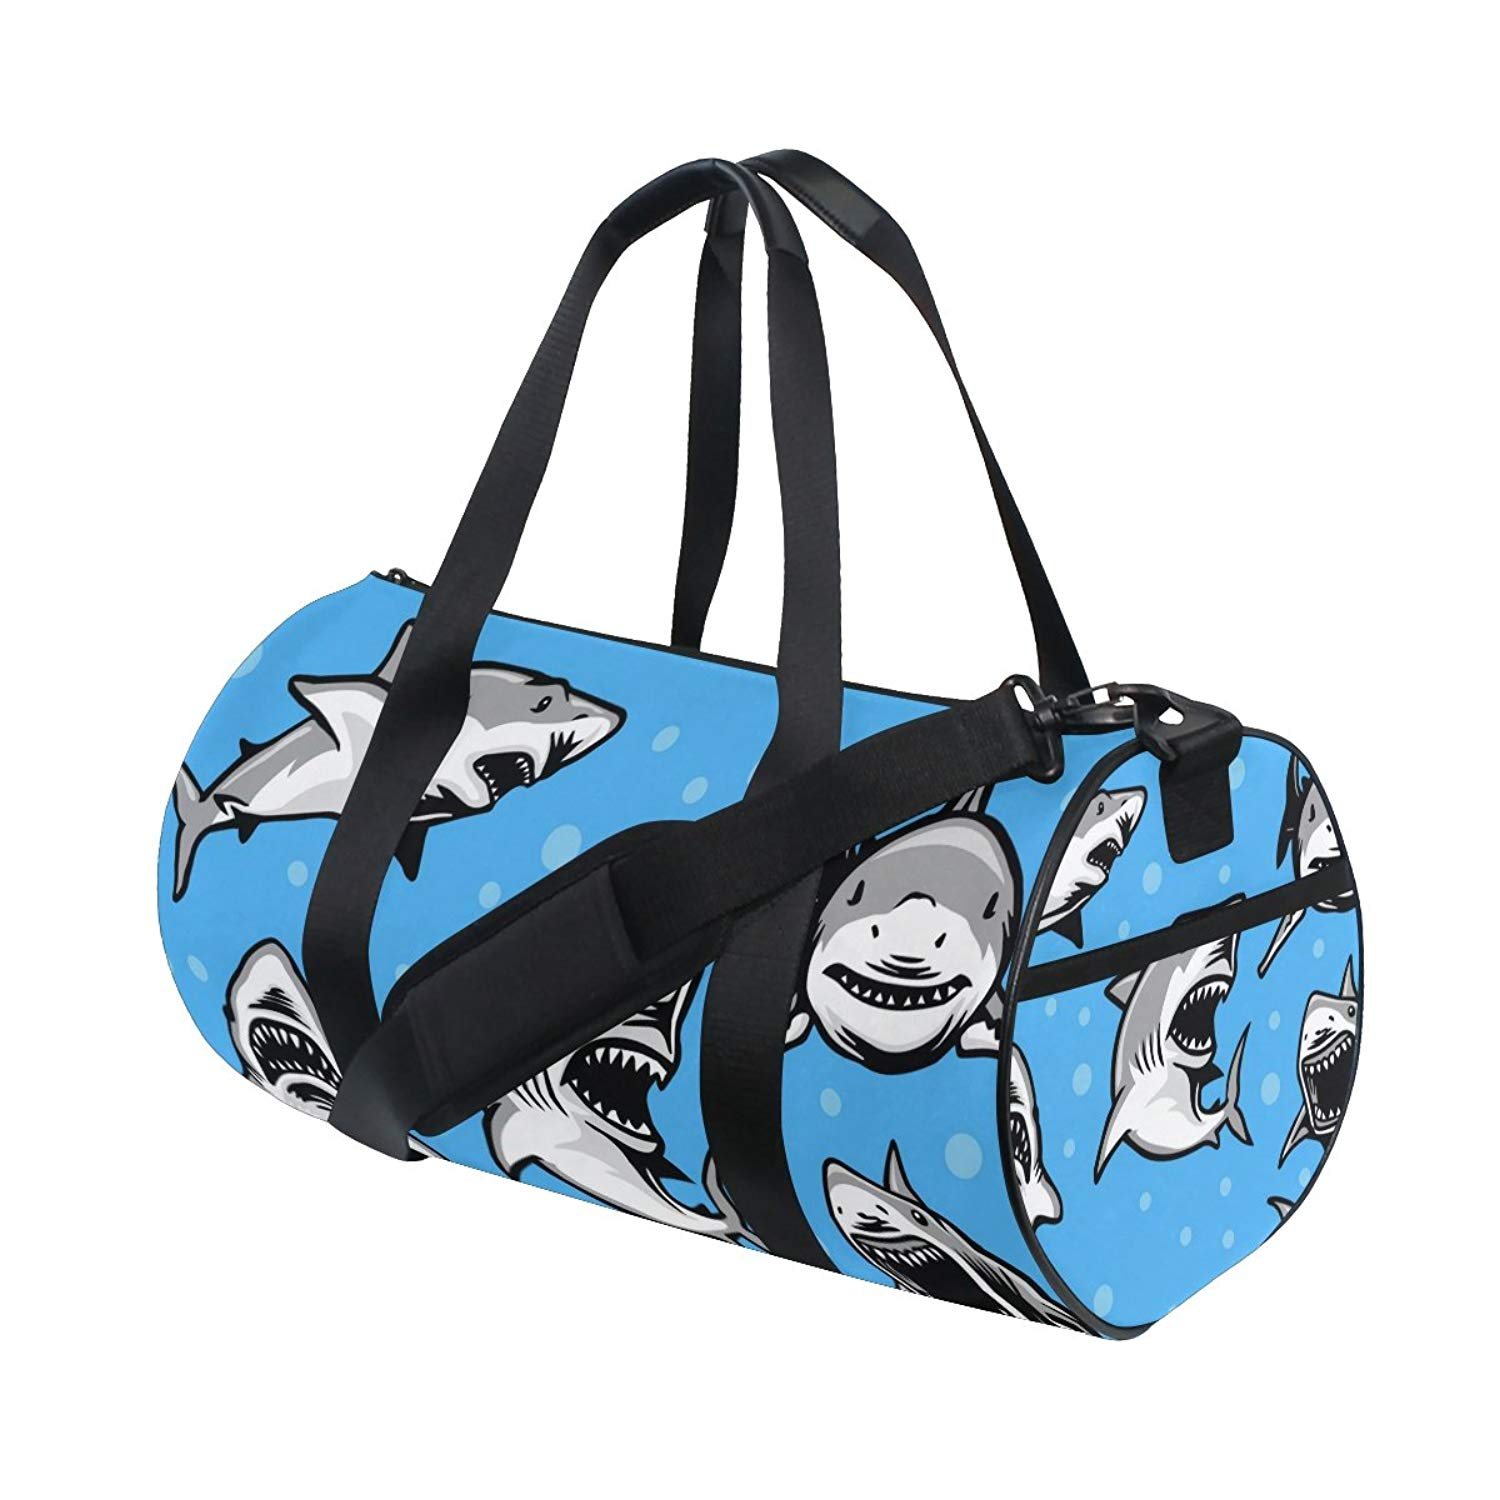 fd7e8c7ff271 Get Quotations · ALIREA Great White Shark Duffle bag Shoulder Handy Sports Gym  Bags for Men and Women